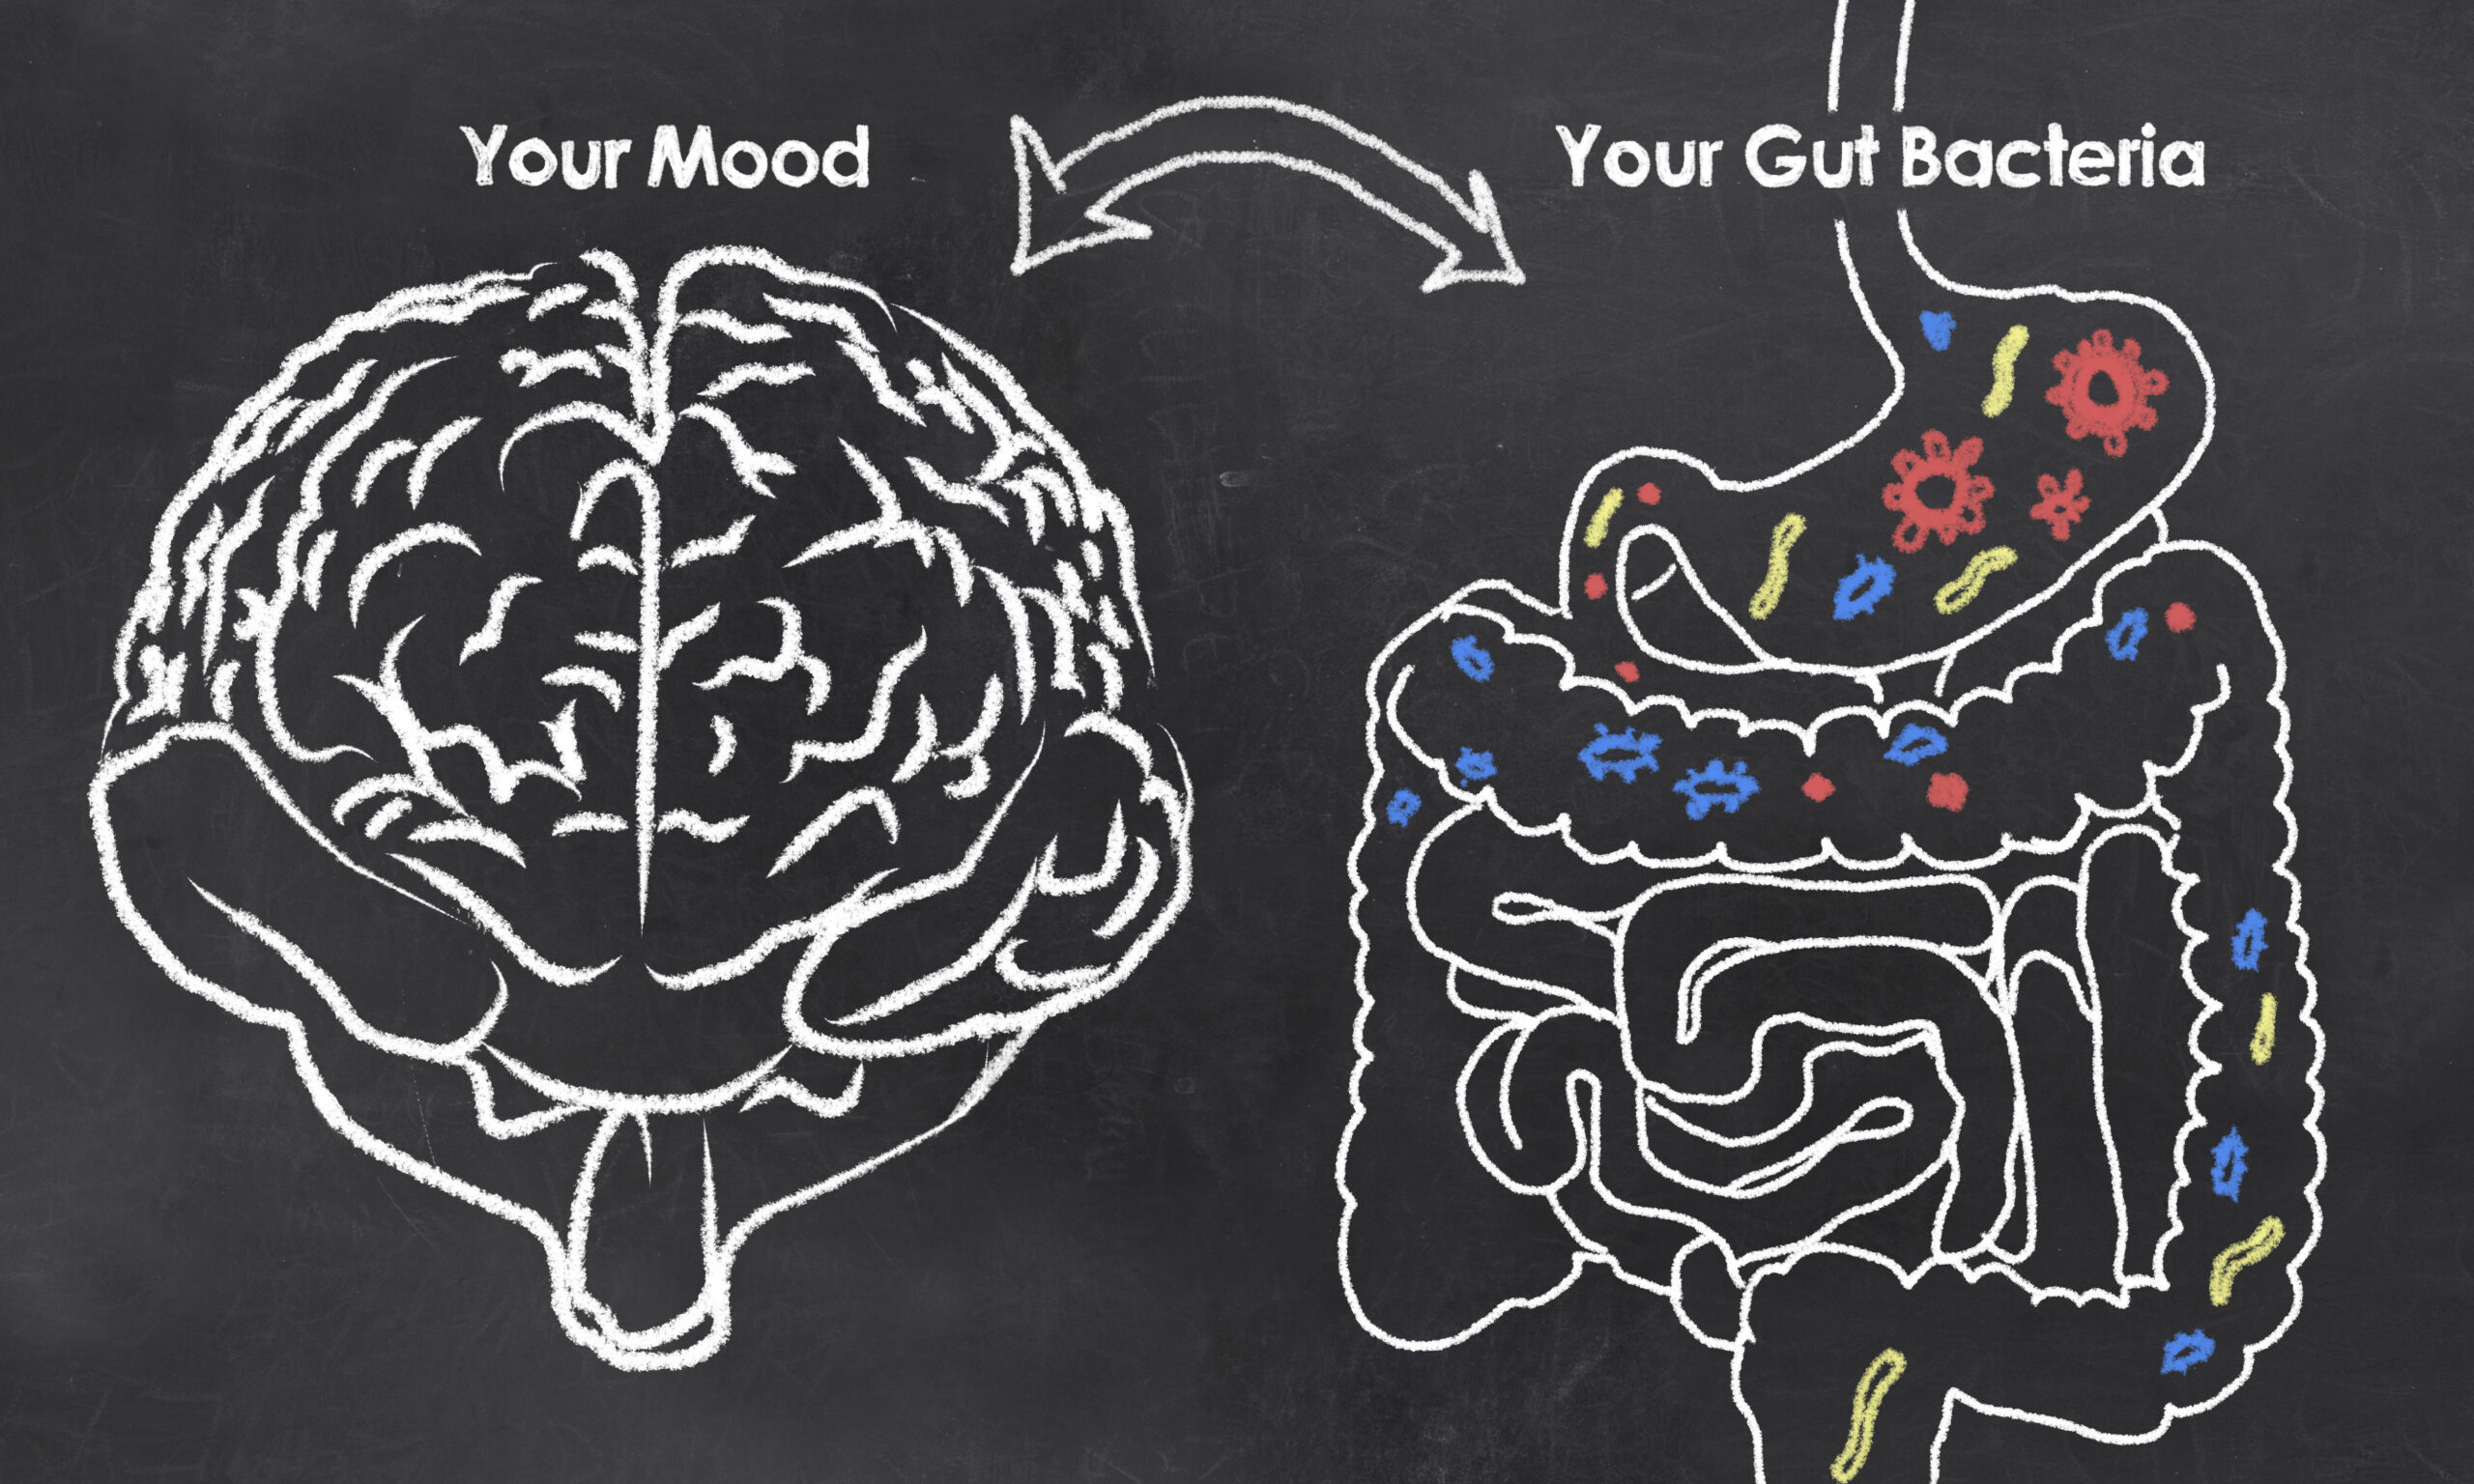 The brain and gut connection.